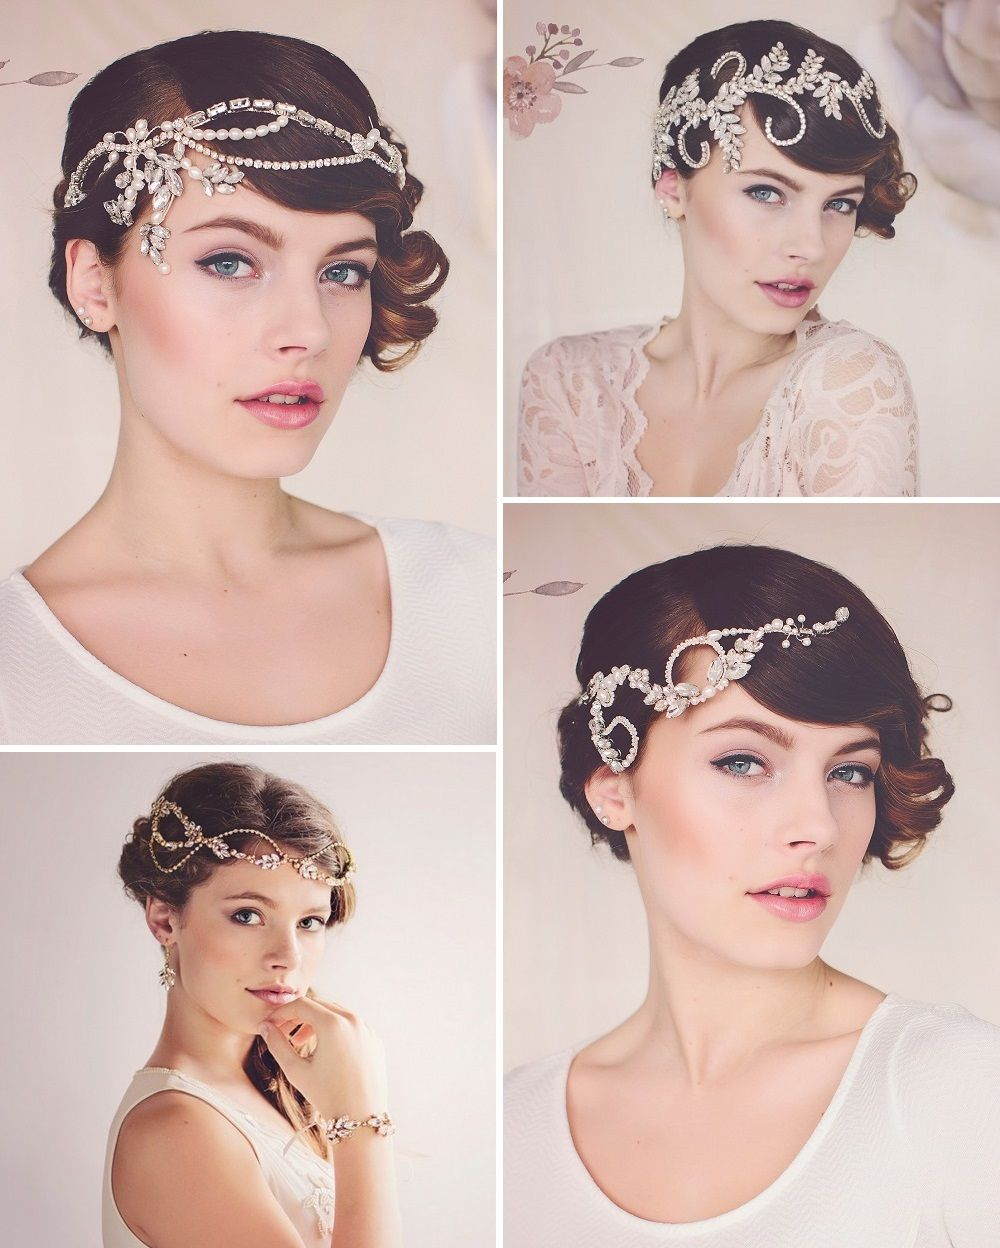 The Very Best Vintage Wedding Headpieces Lace Favour Wedding Headpiece Vintage Bridal Headpiece Vintage Vintage Headpiece